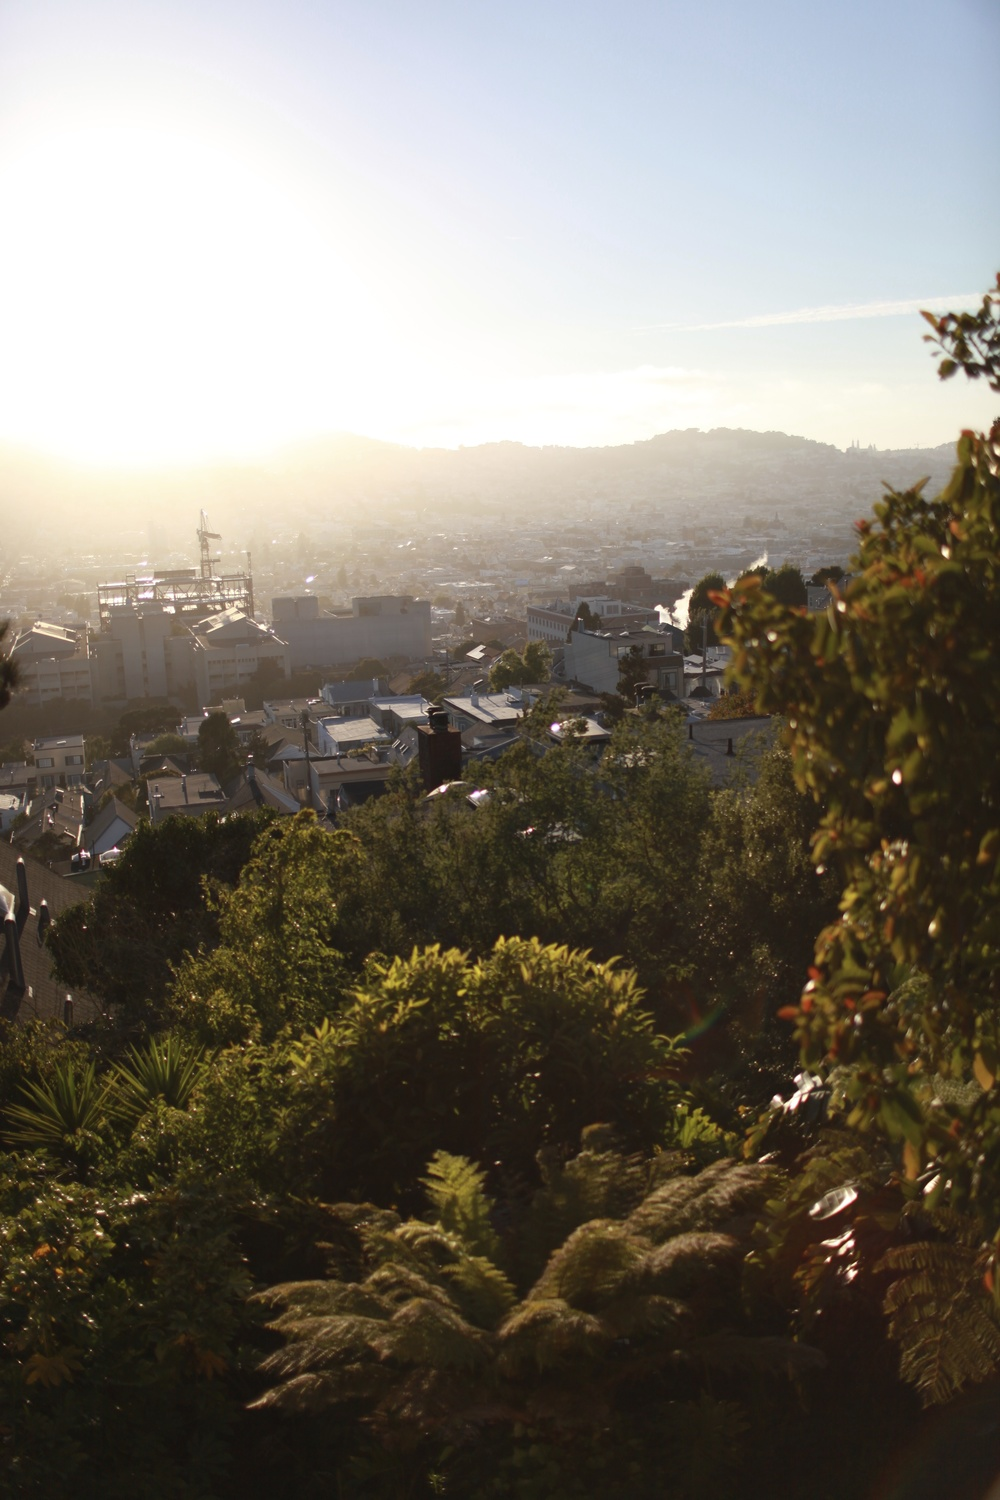 communal tropical yard & garden below, with hazy view of the mission above